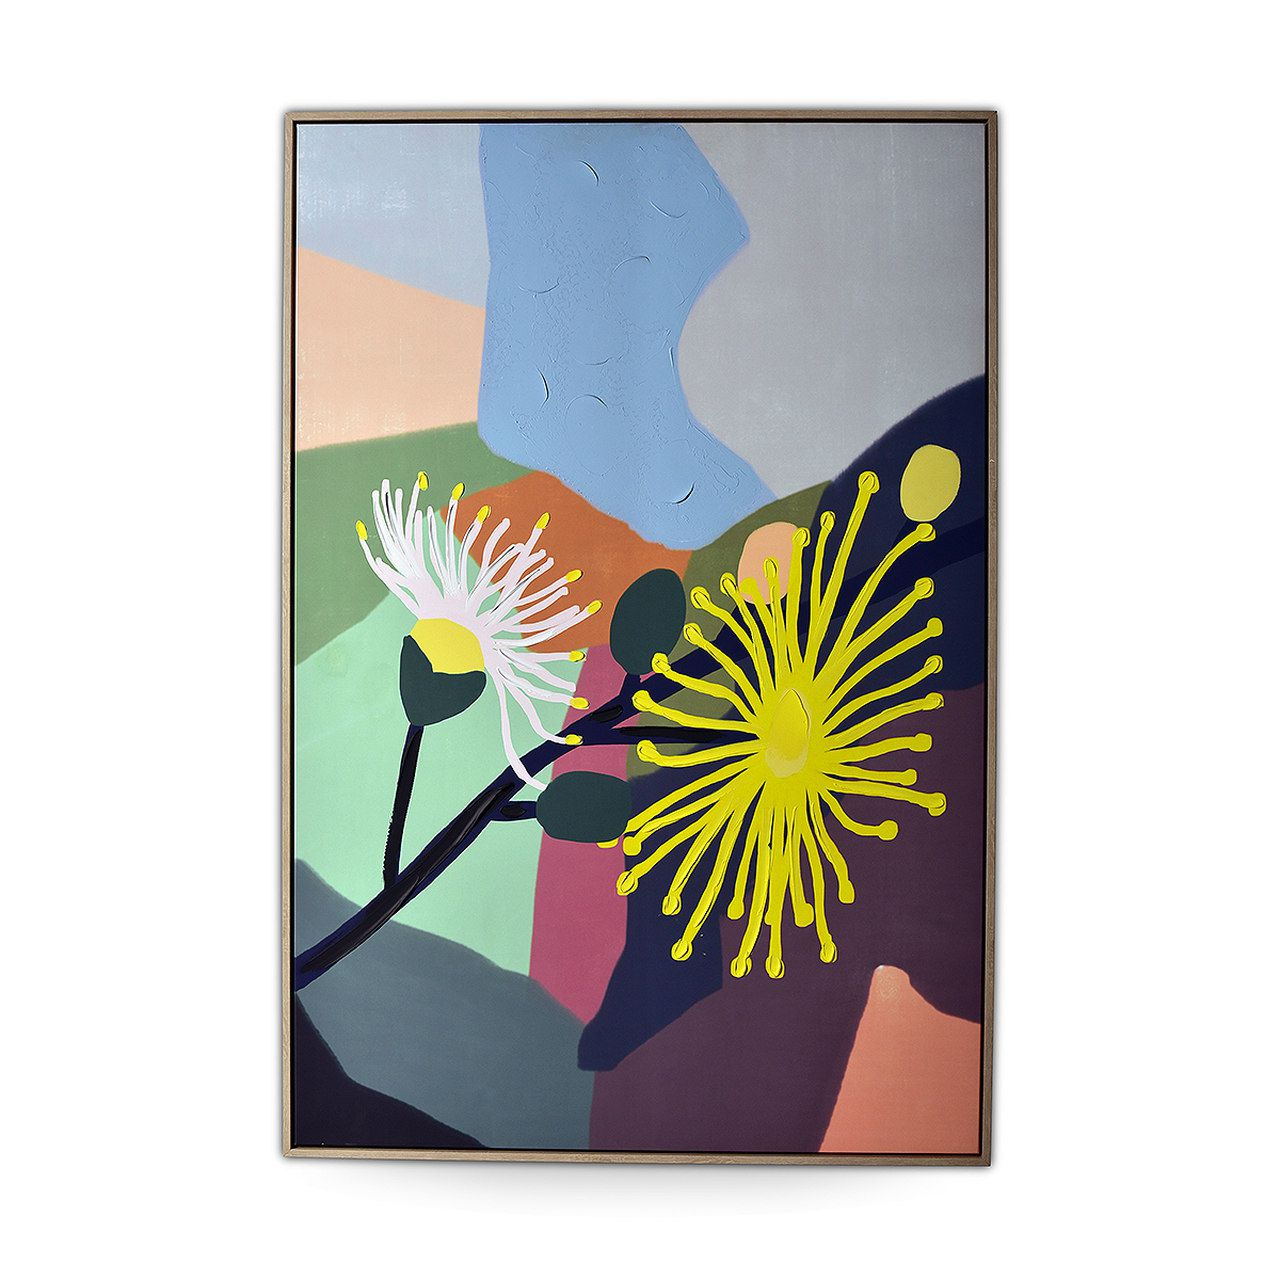 Quadro Decor Abstrato Modernista Flores